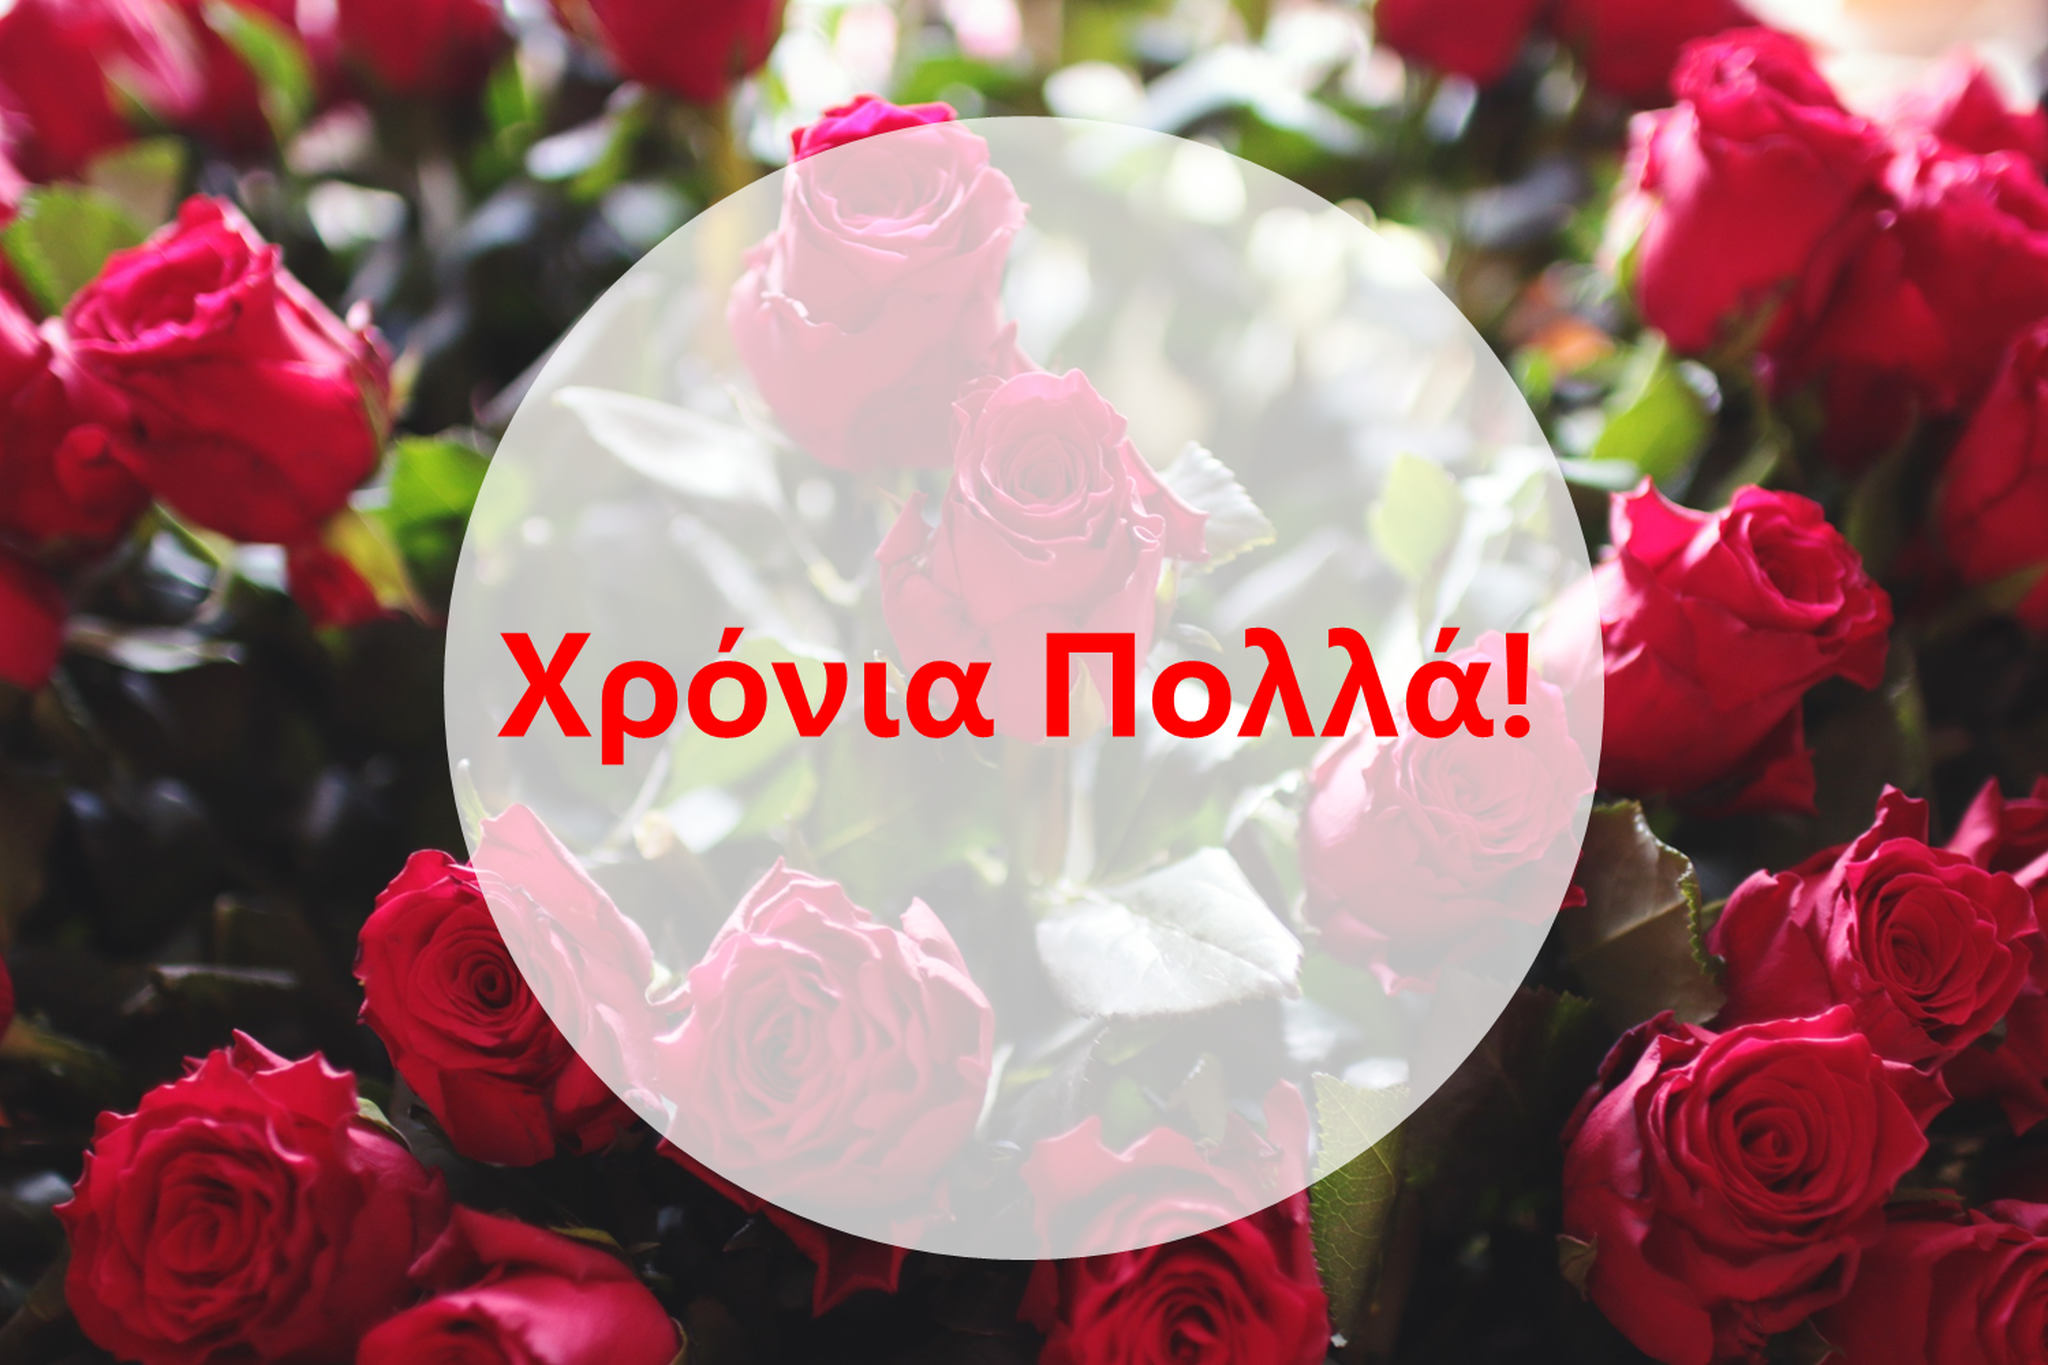 How you wish something in greek in various circumstances omilo xronia polla wish m4hsunfo